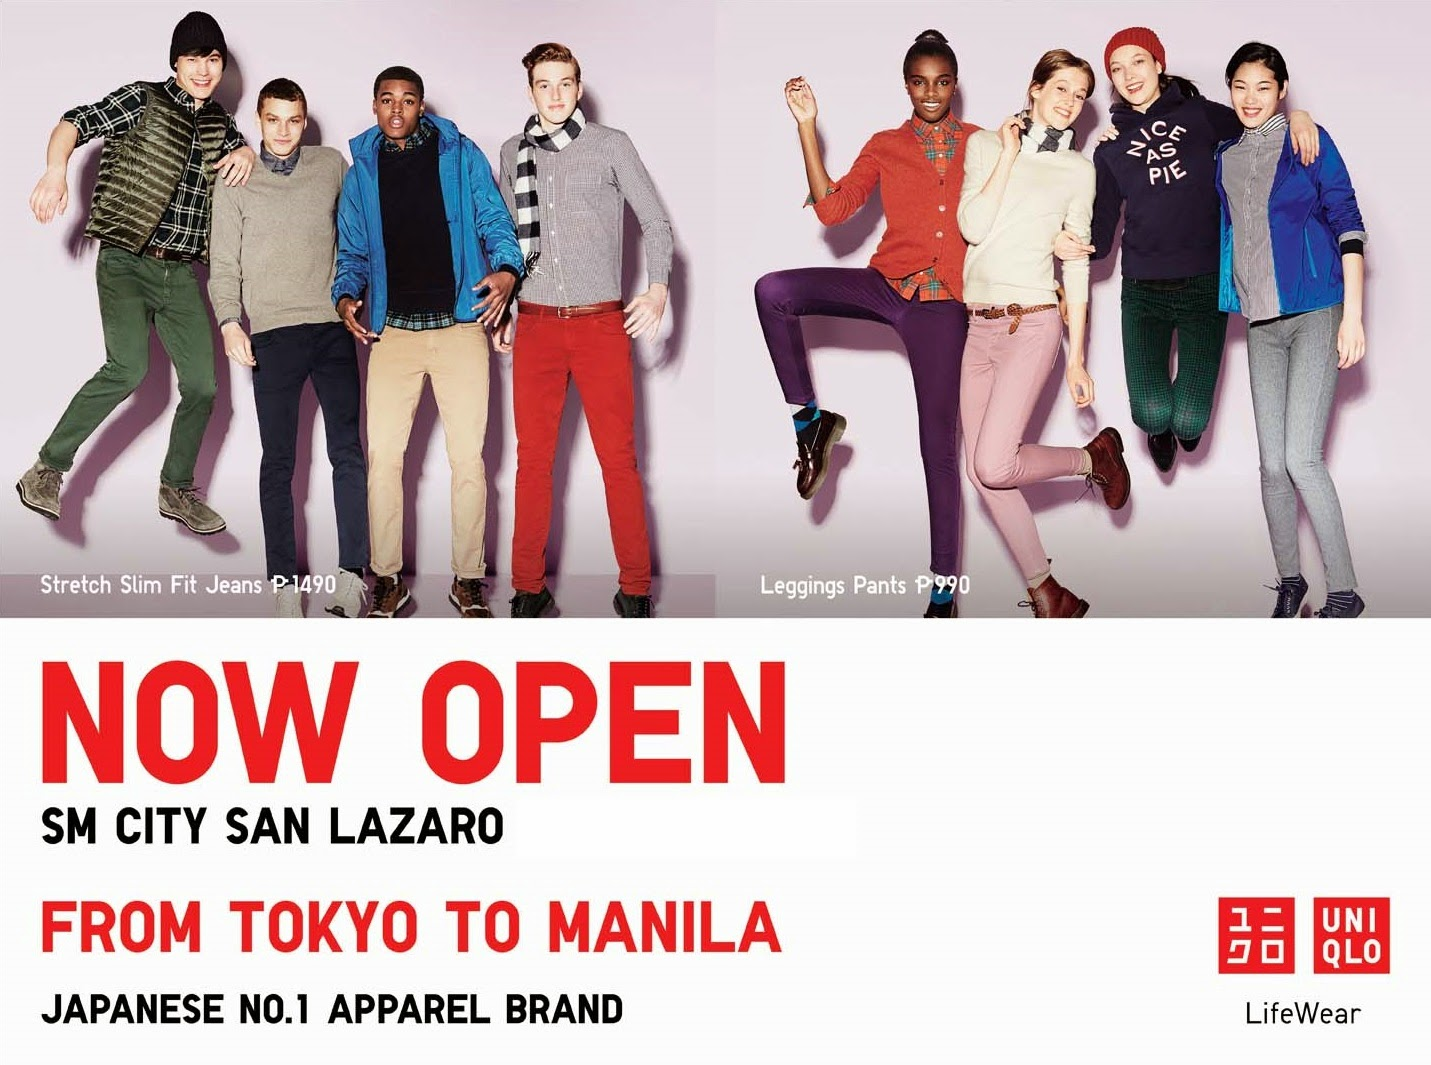 Image: UNIQLO at SM City San Lazaro